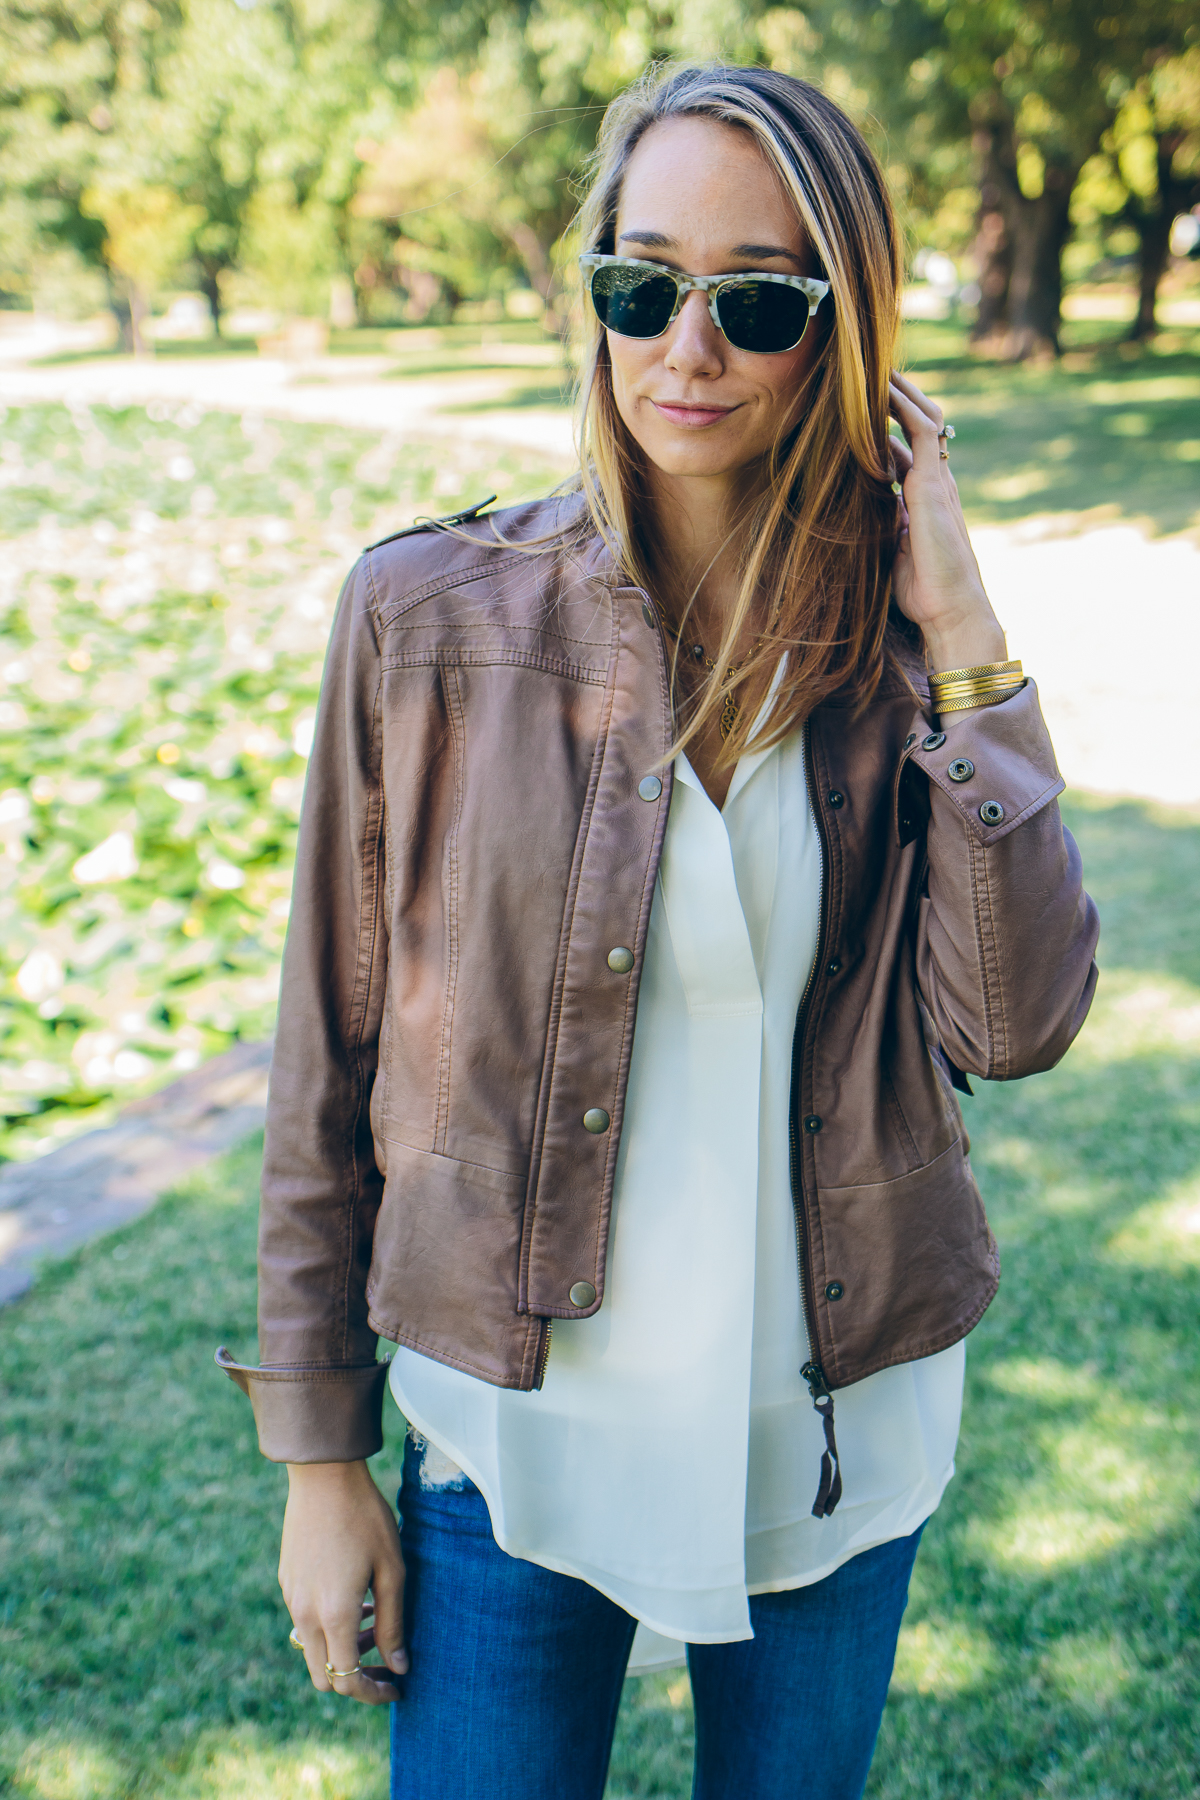 vegan leather jacket — via @TheFoxandShe